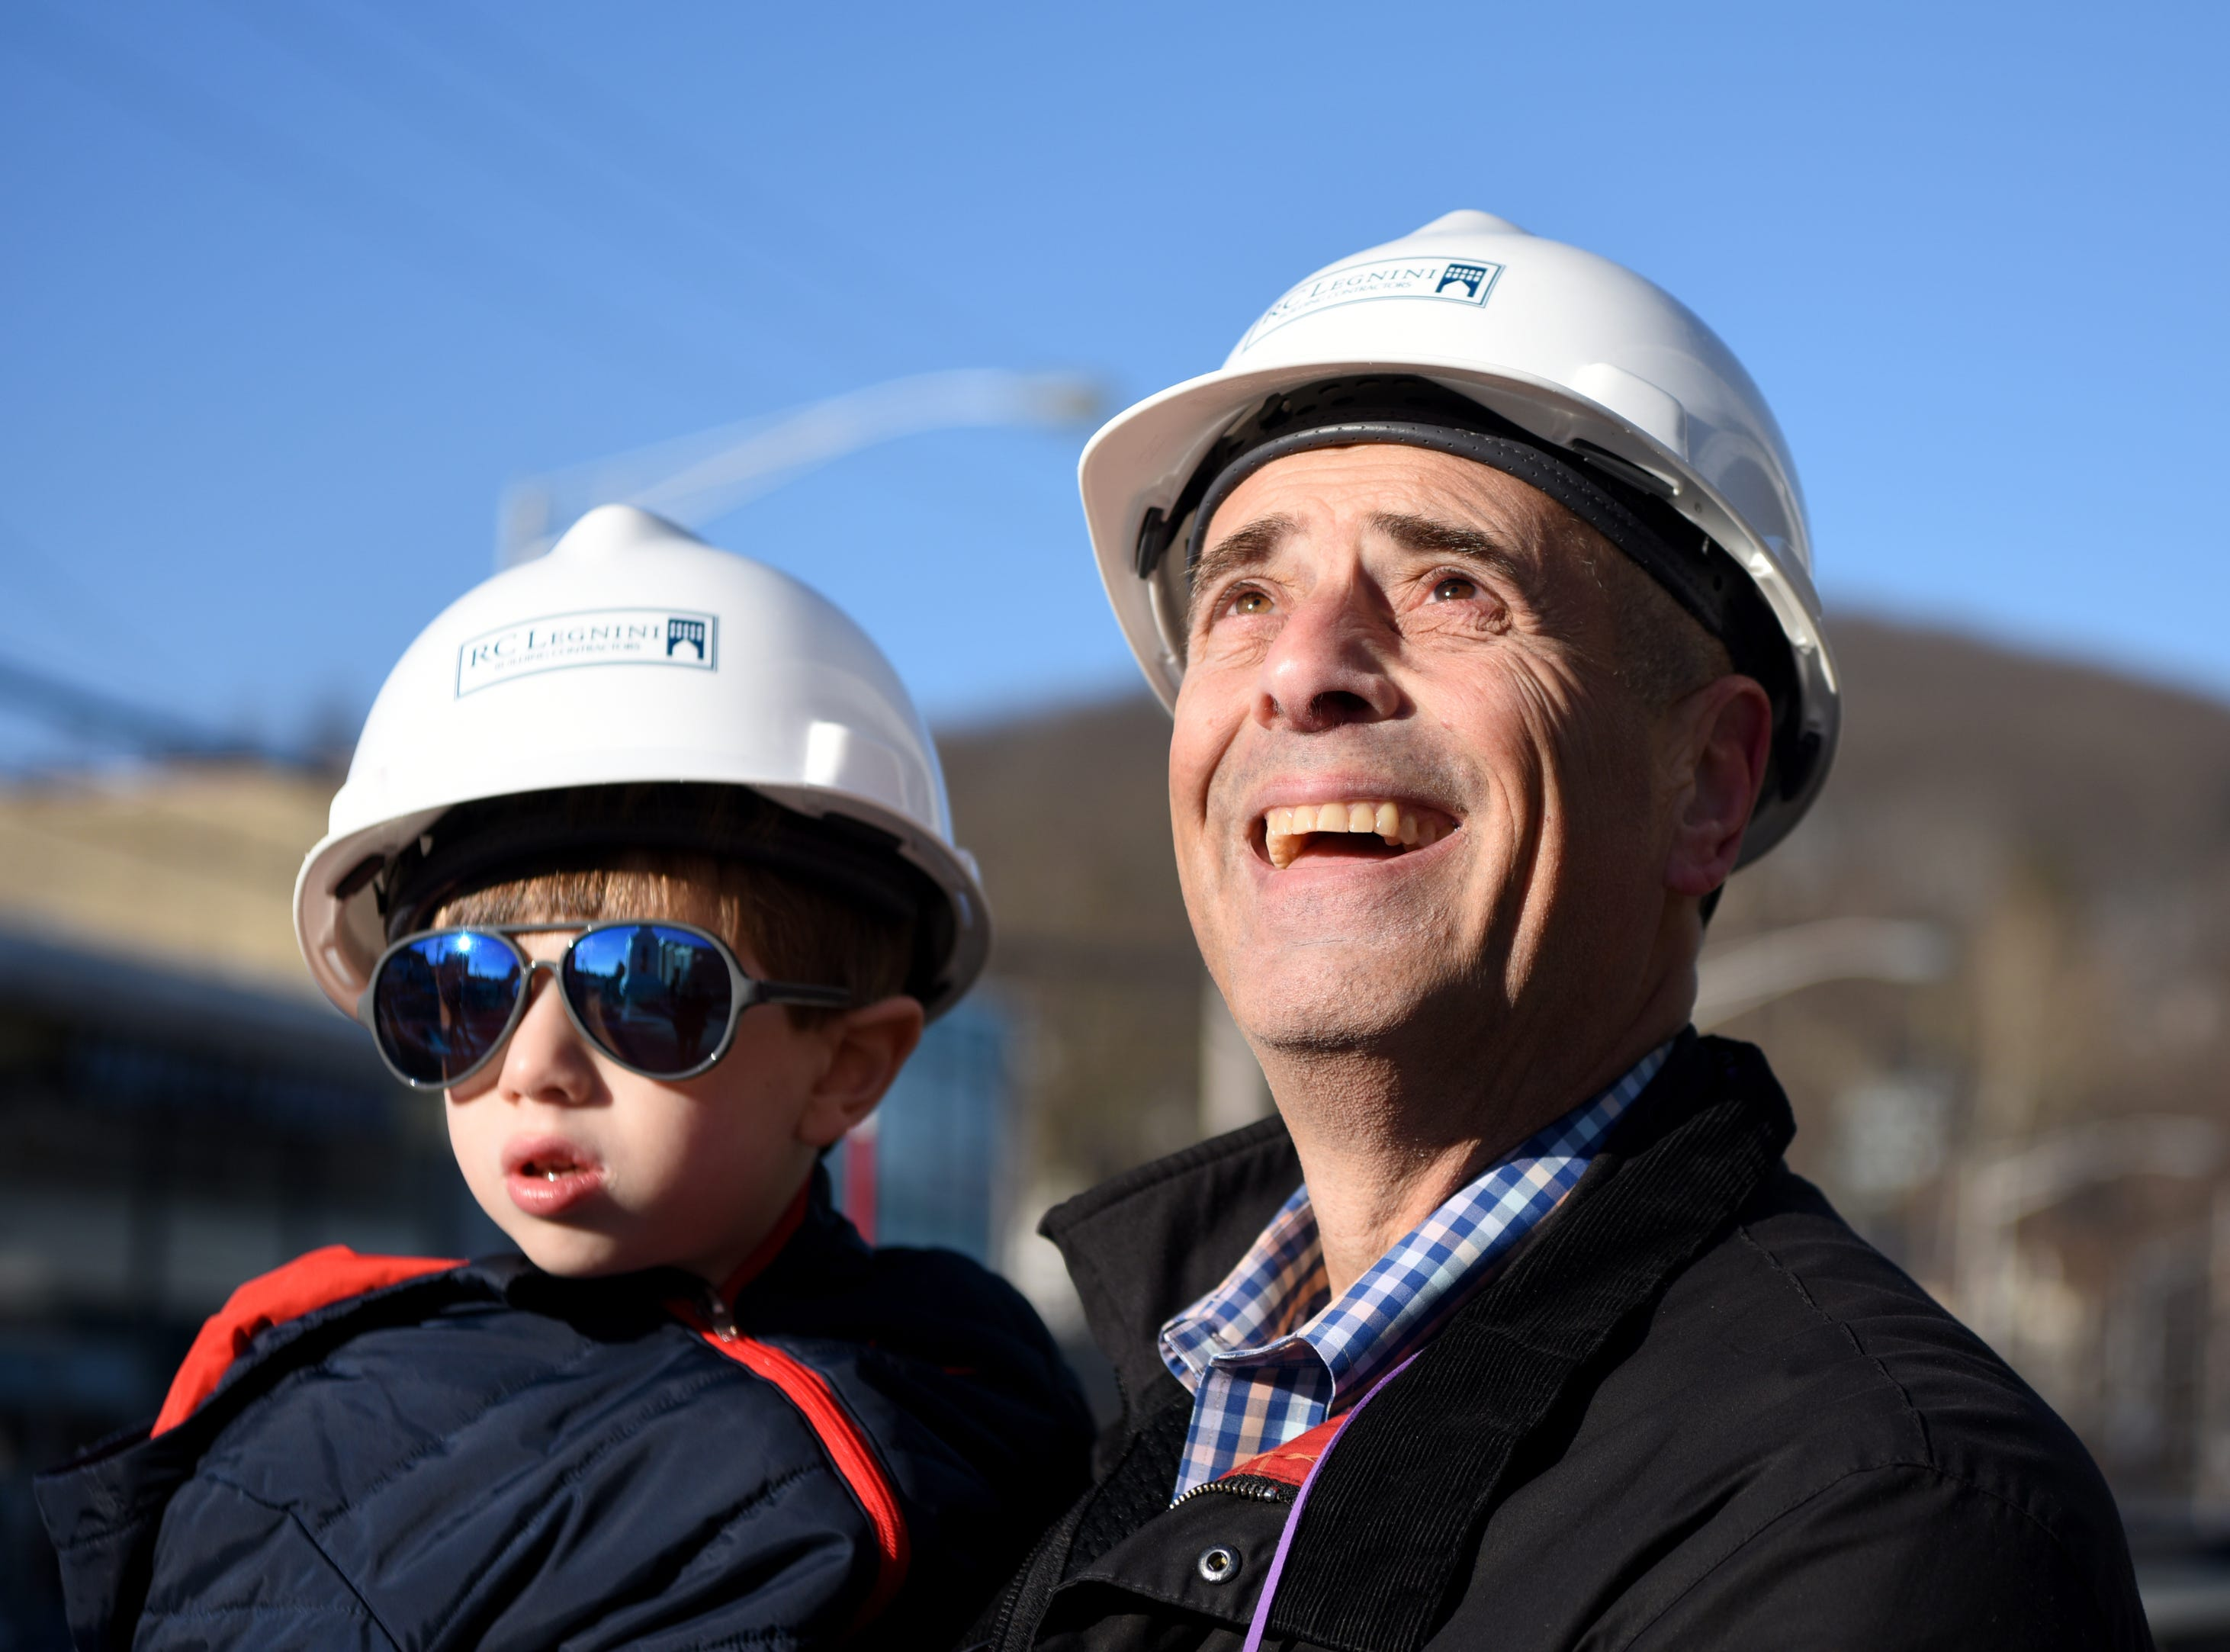 Builder Mitch Handman, and his grandson Aaron Zimmerman, 3, watch a crane raise a steeple onto the church in Dover on Wednesday, March 13, 2019.